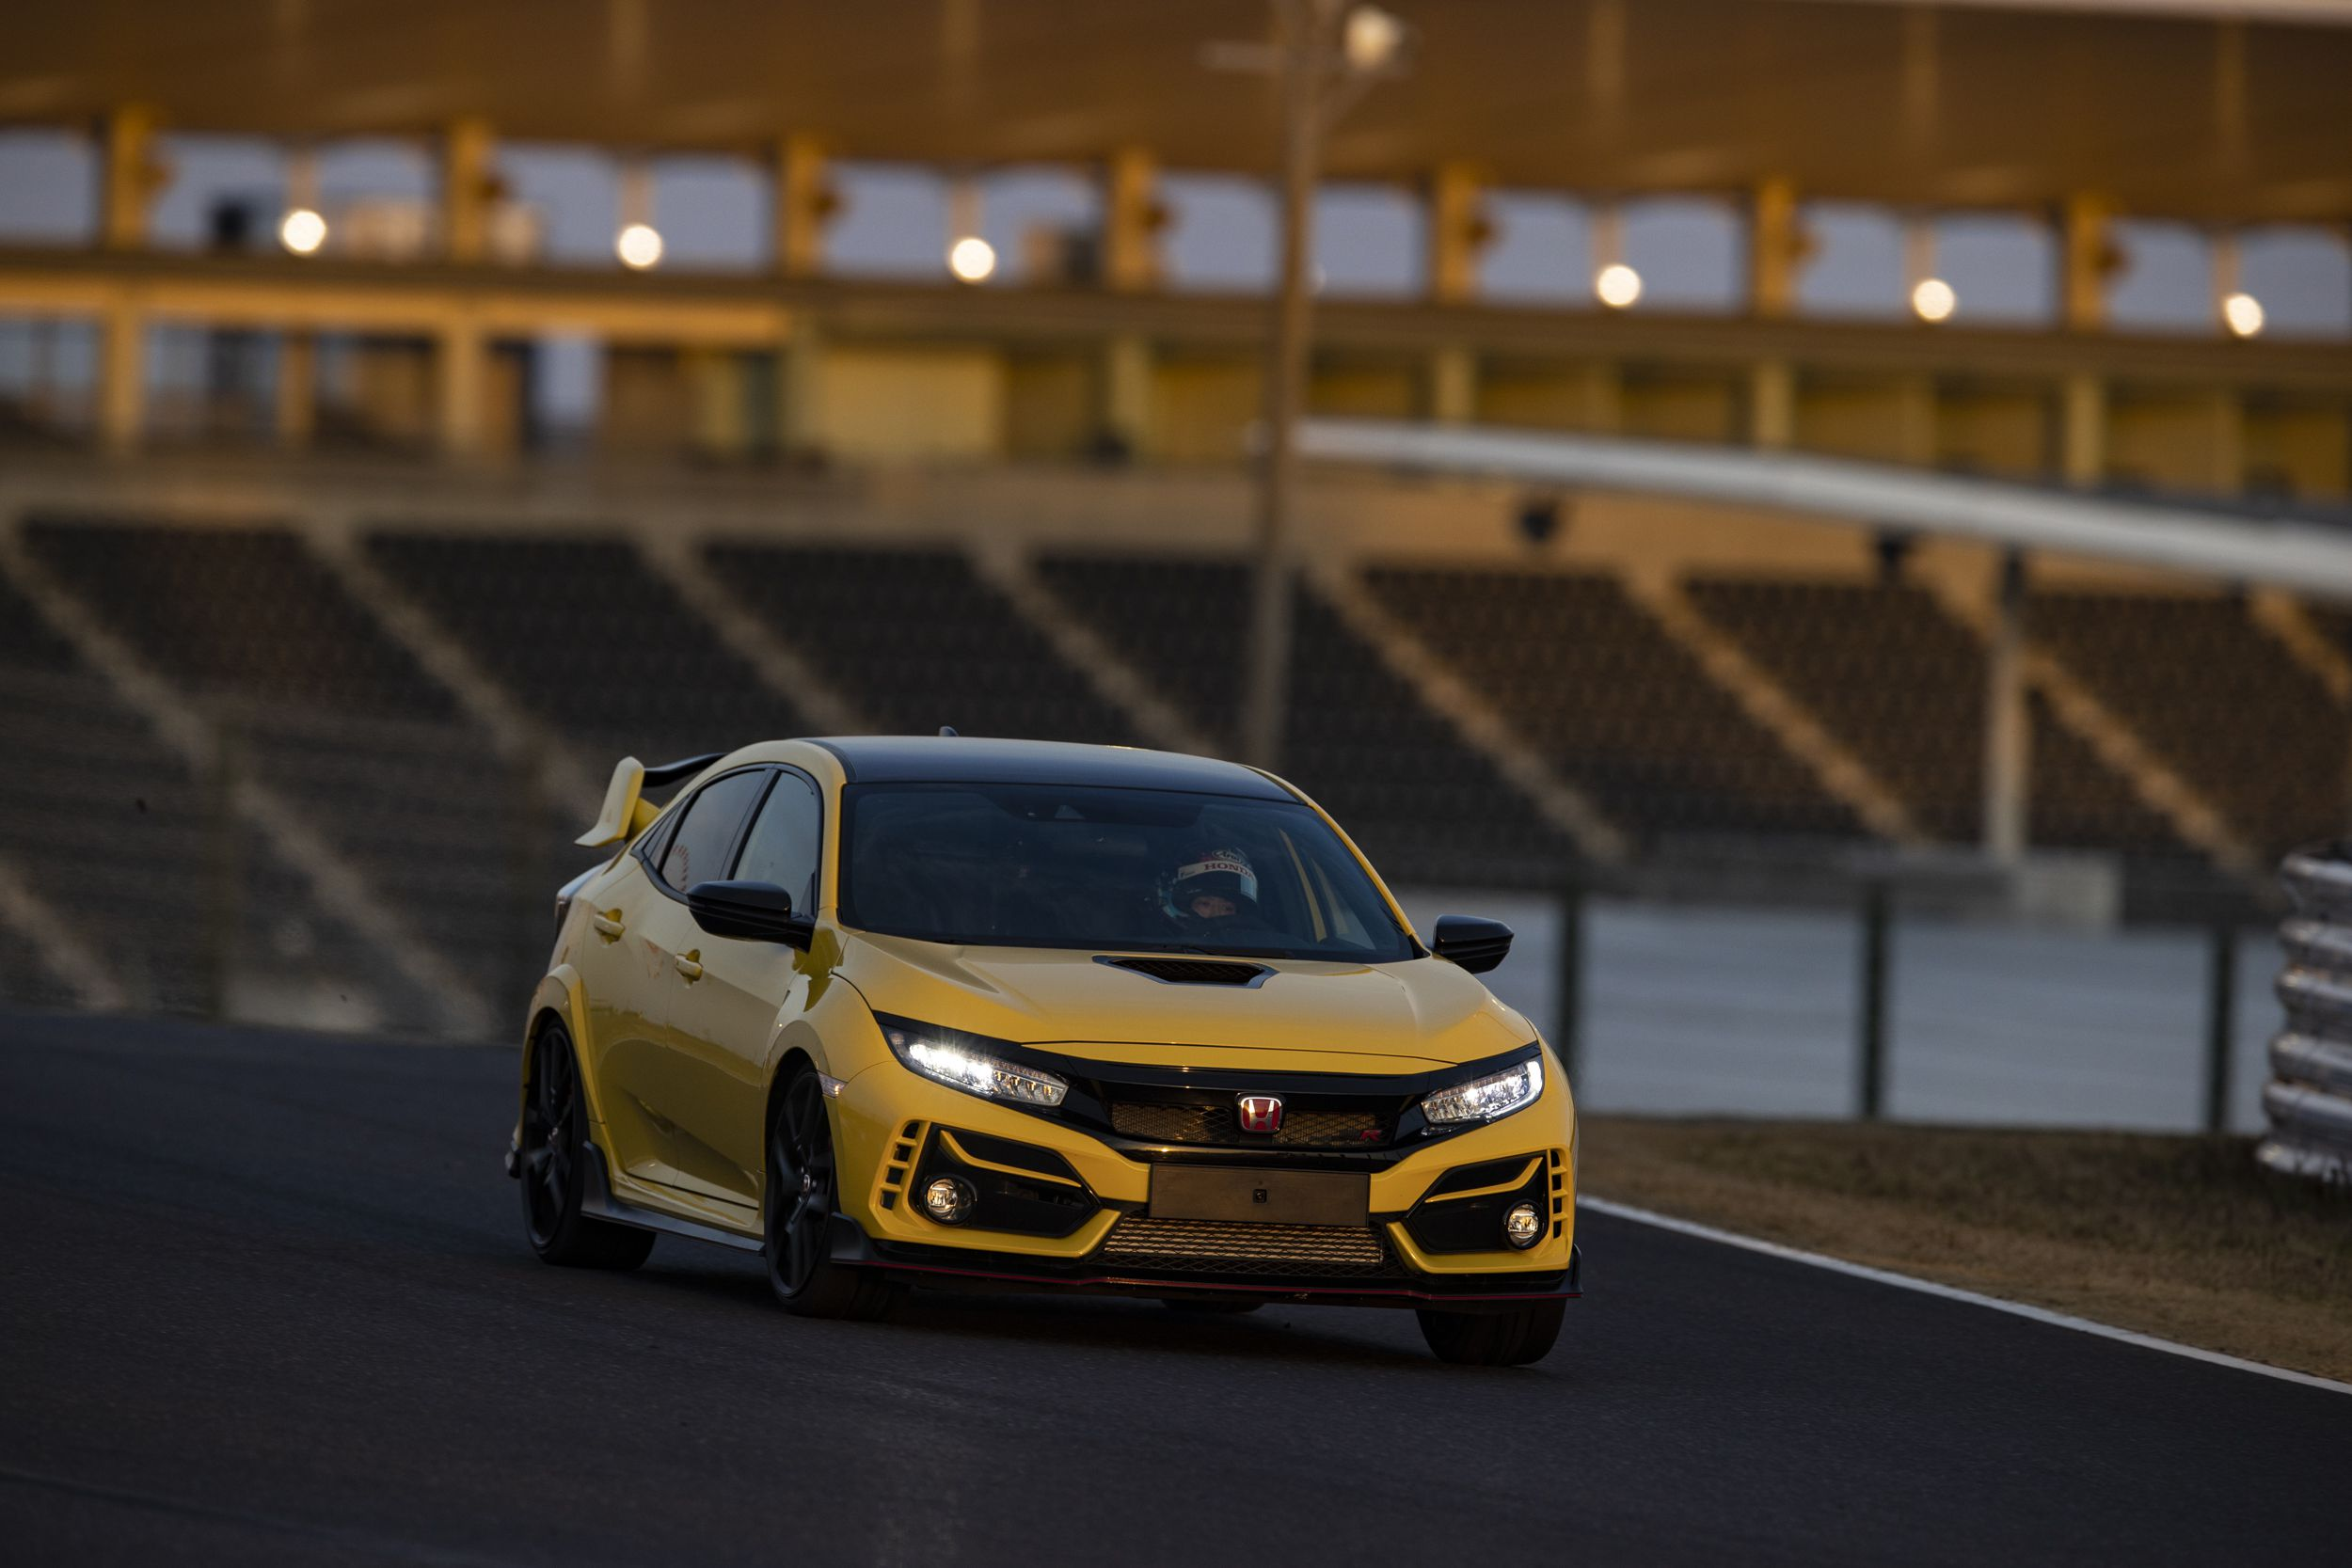 New limited edition Honda Civic Type R